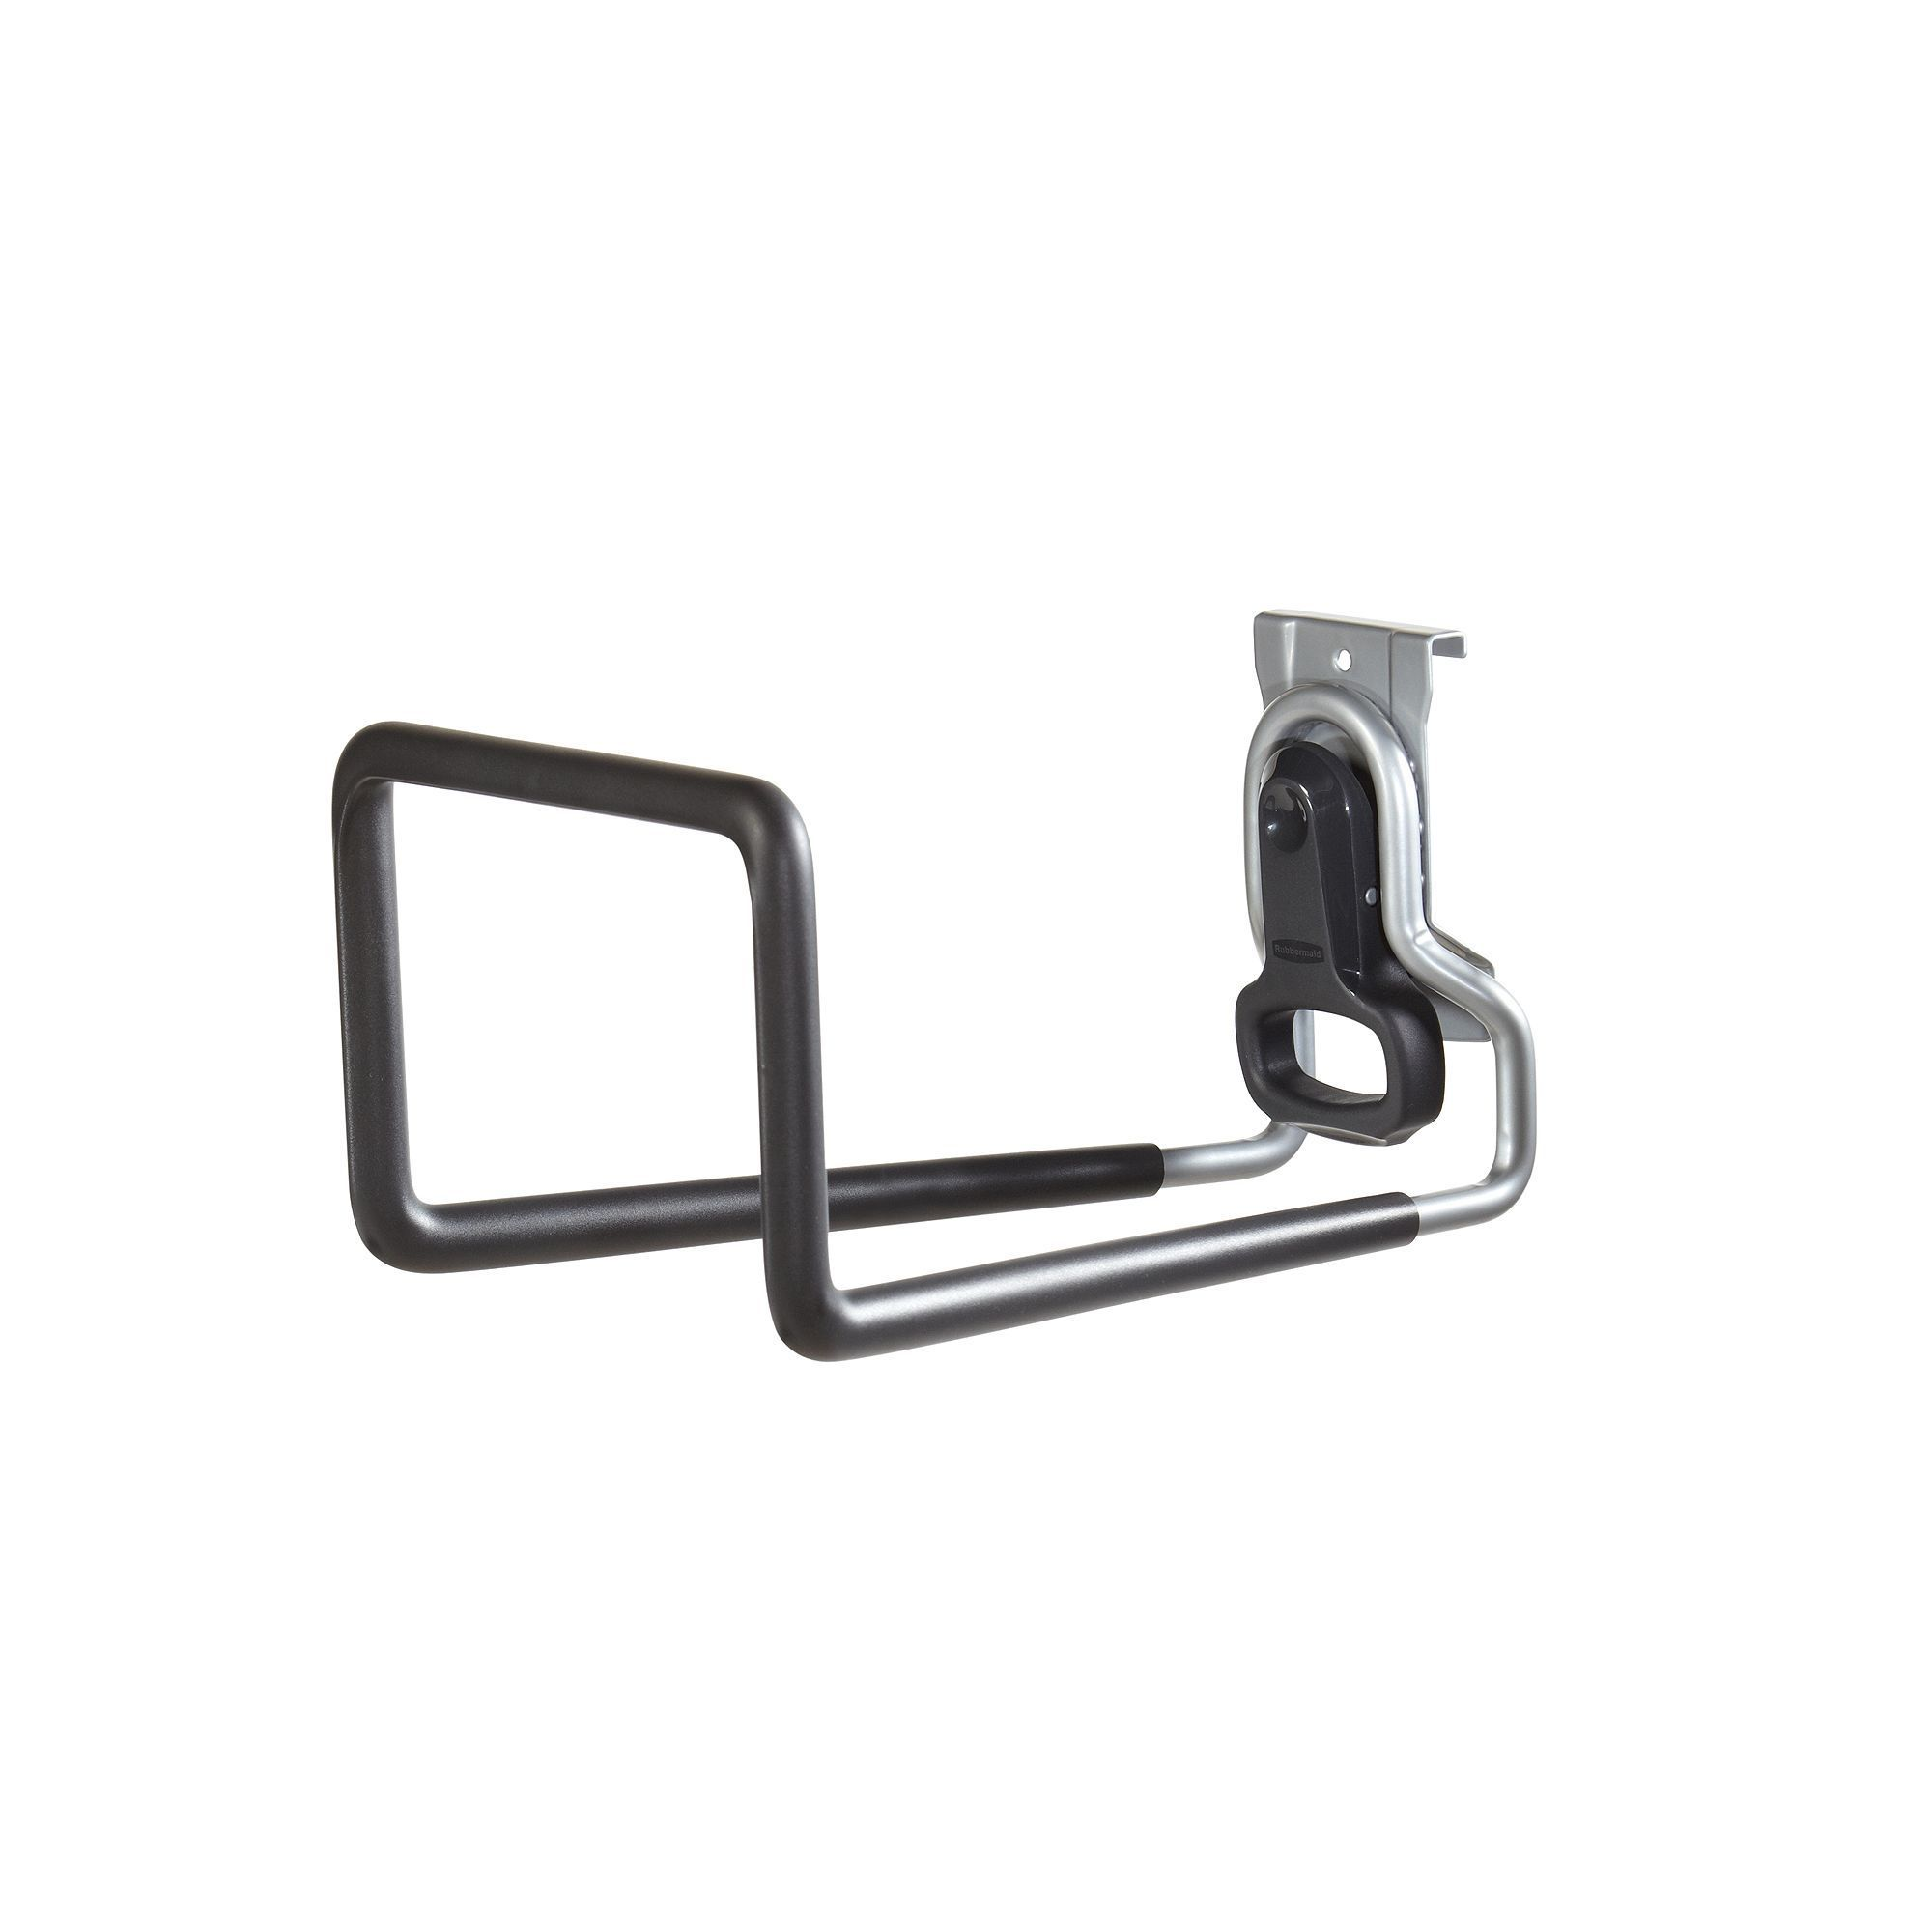 Rubbermaid FastTrack Hose Hook